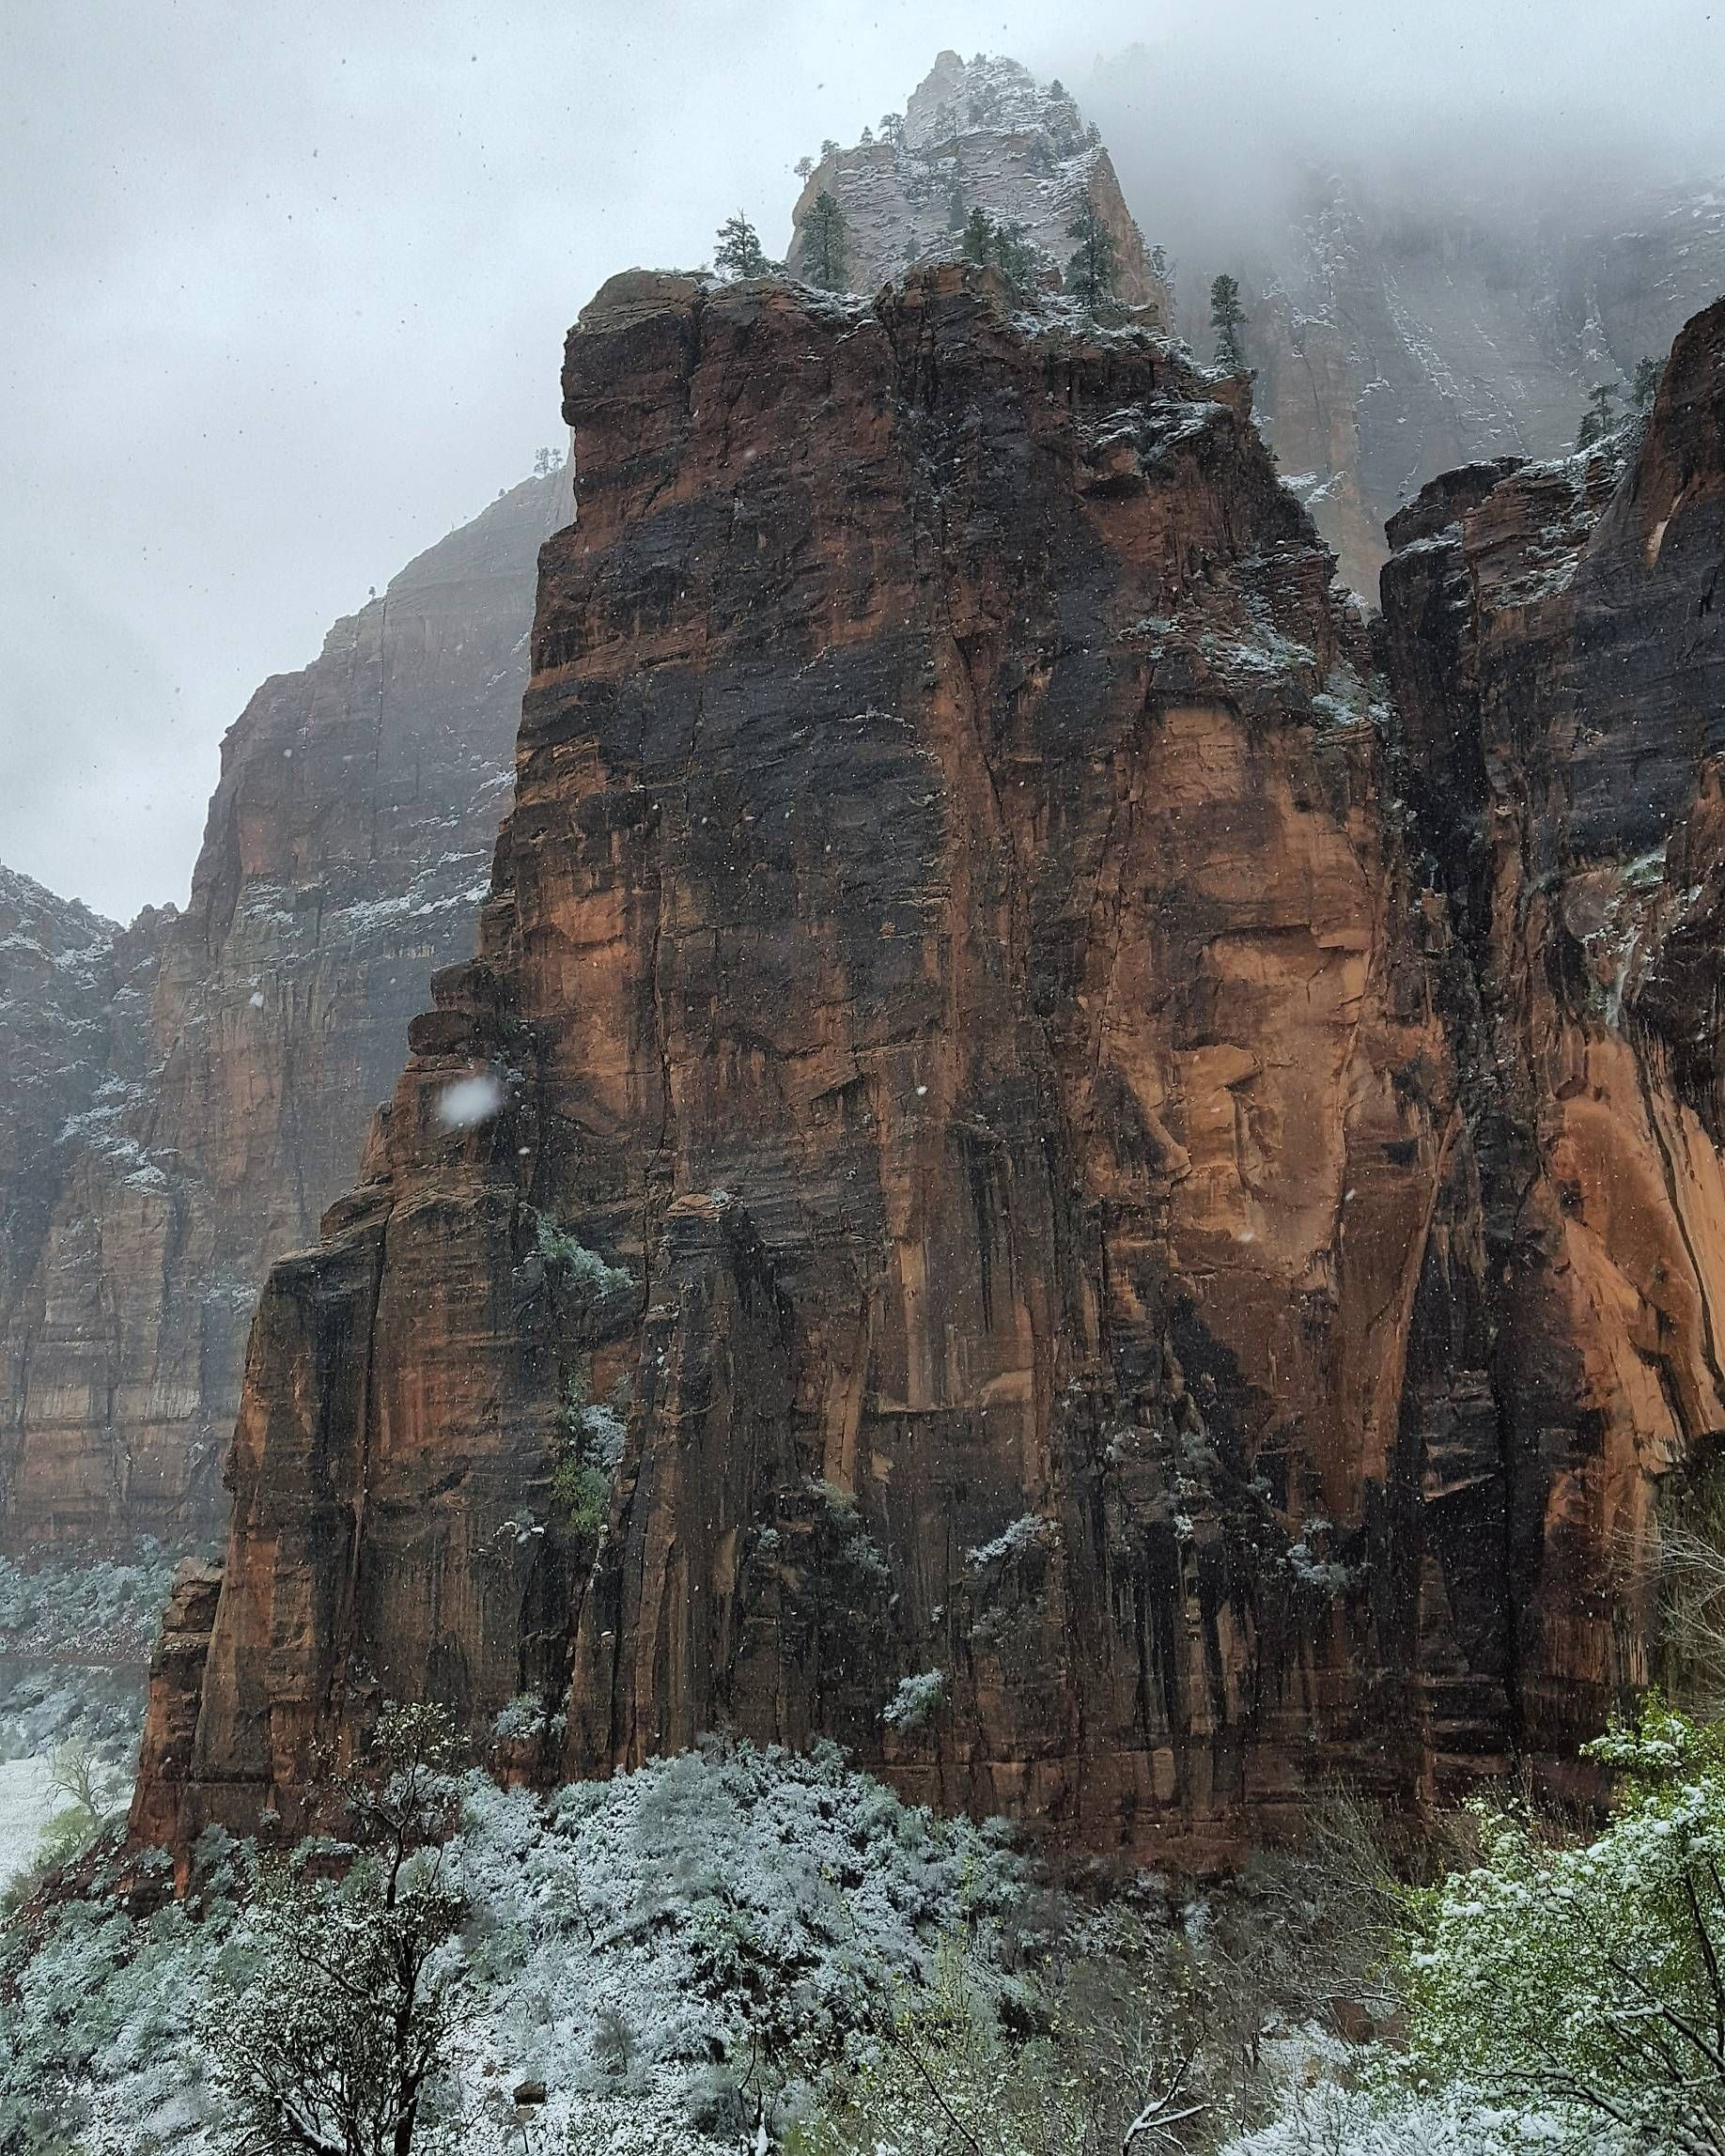 Snow At Zion National Park Os 3130 1836 Reddit Zion National